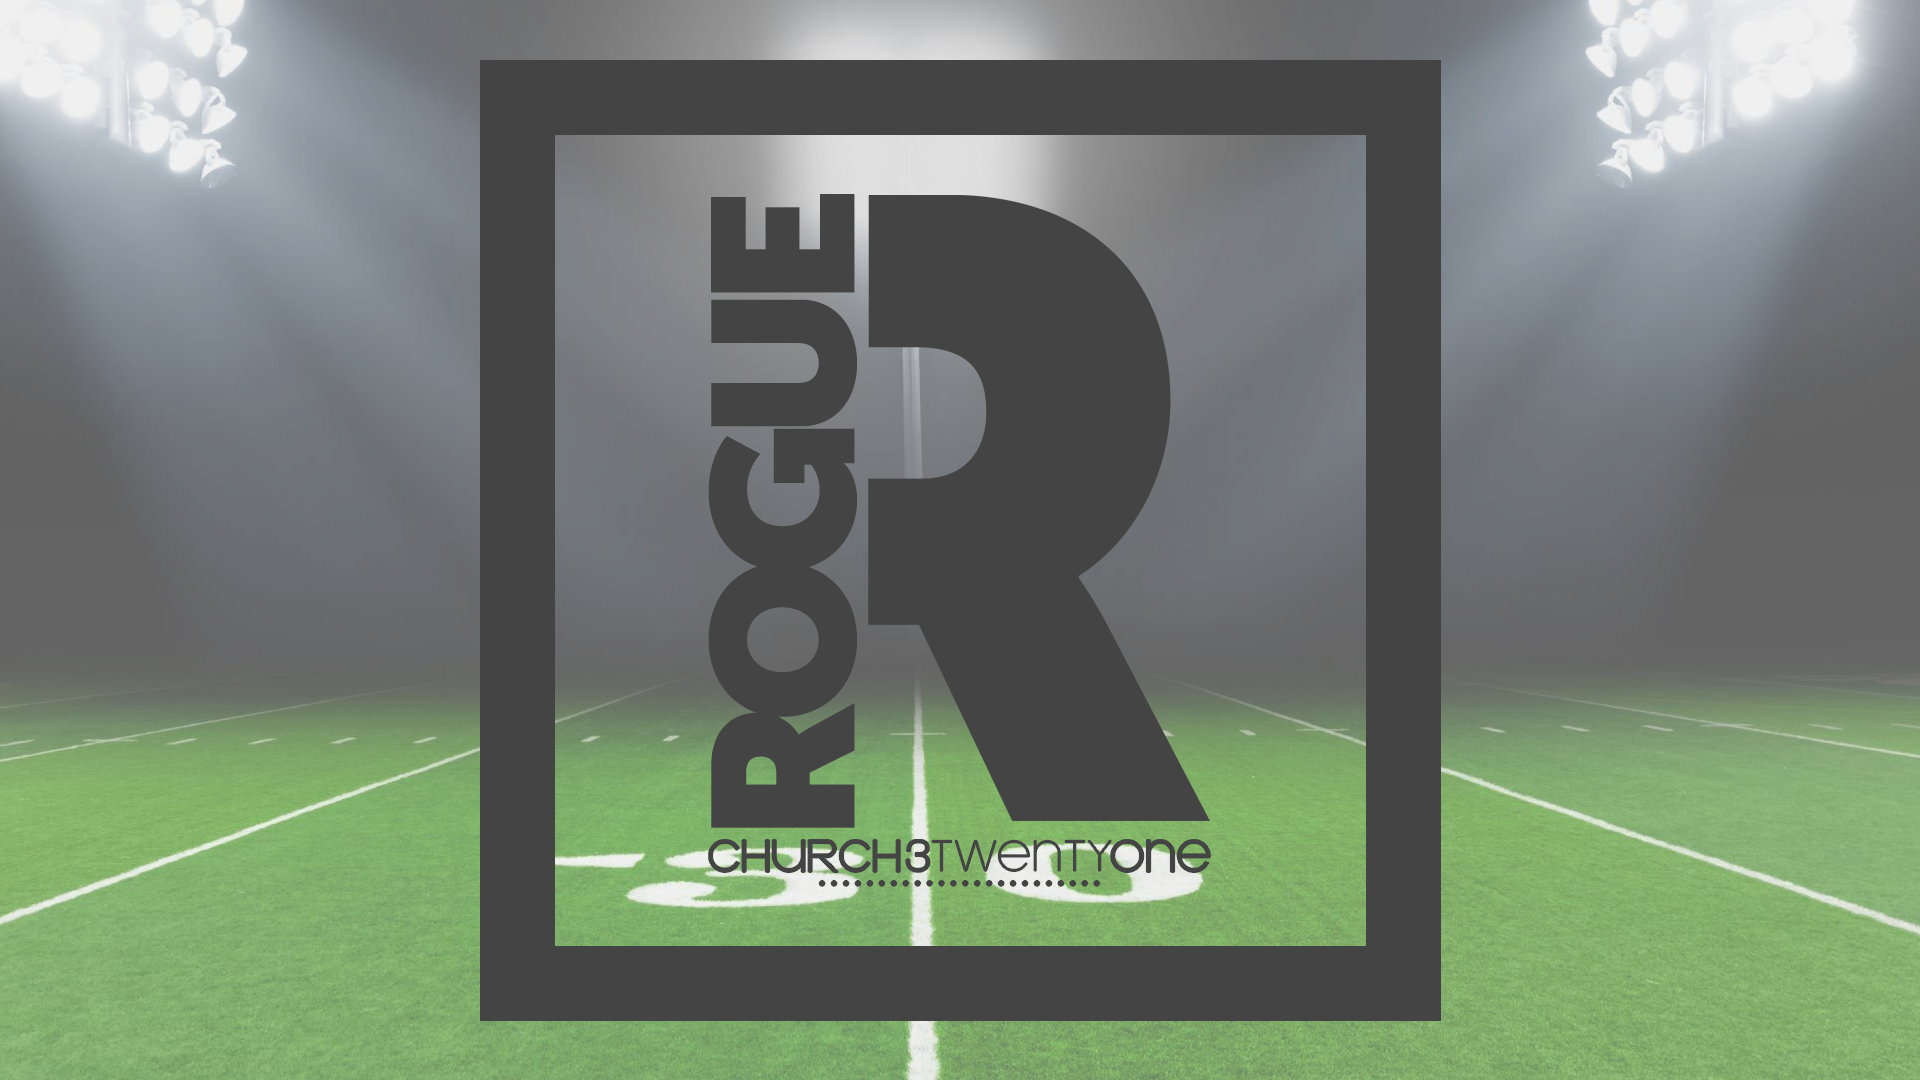 ROGUE Men's Tailgate Breakfast - Saturday, October 5th 8:30a - 11:00a